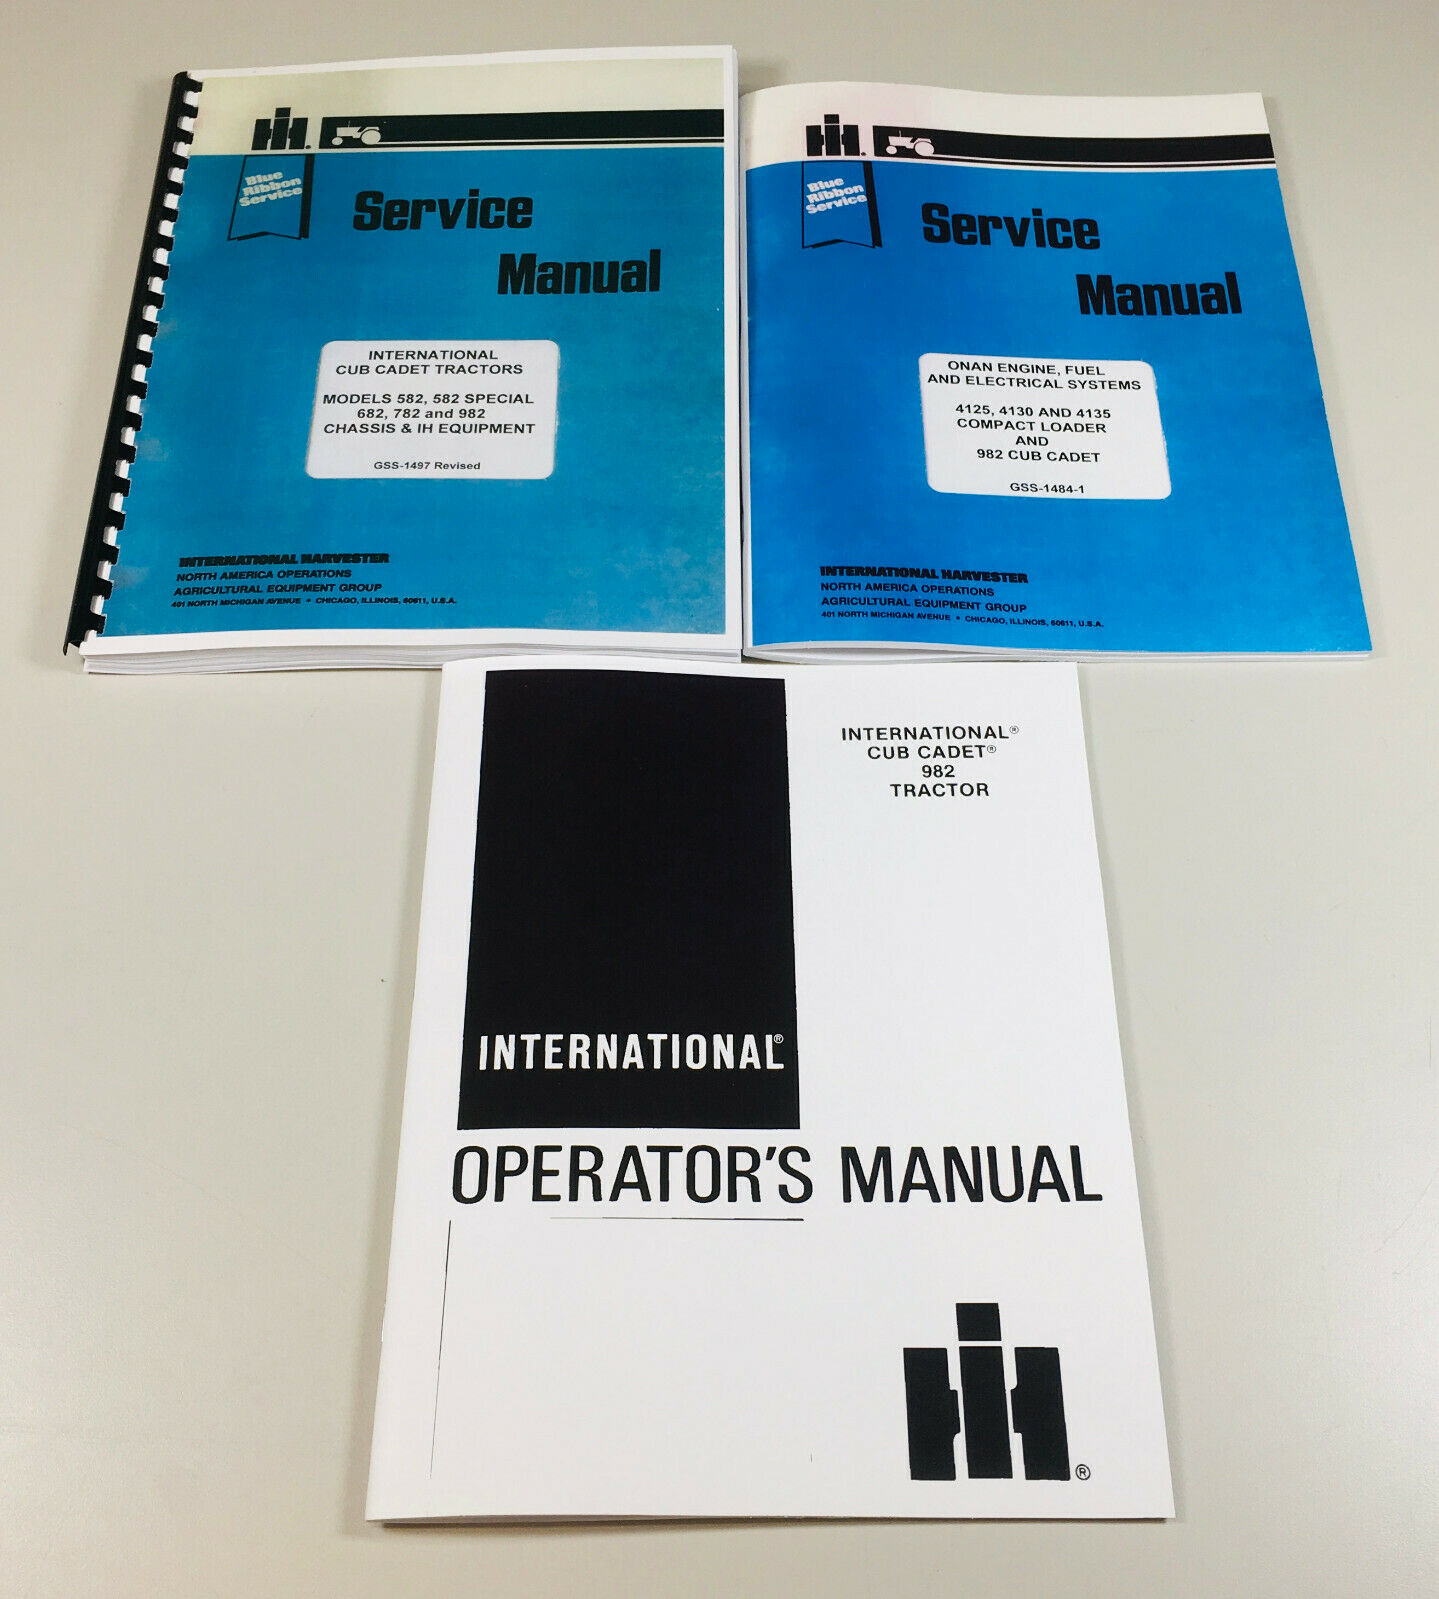 Set Cub Cadet 982 Lawn Garden Tractor Service Owner Manual Repair Operator  1 of 11FREE Shipping ...